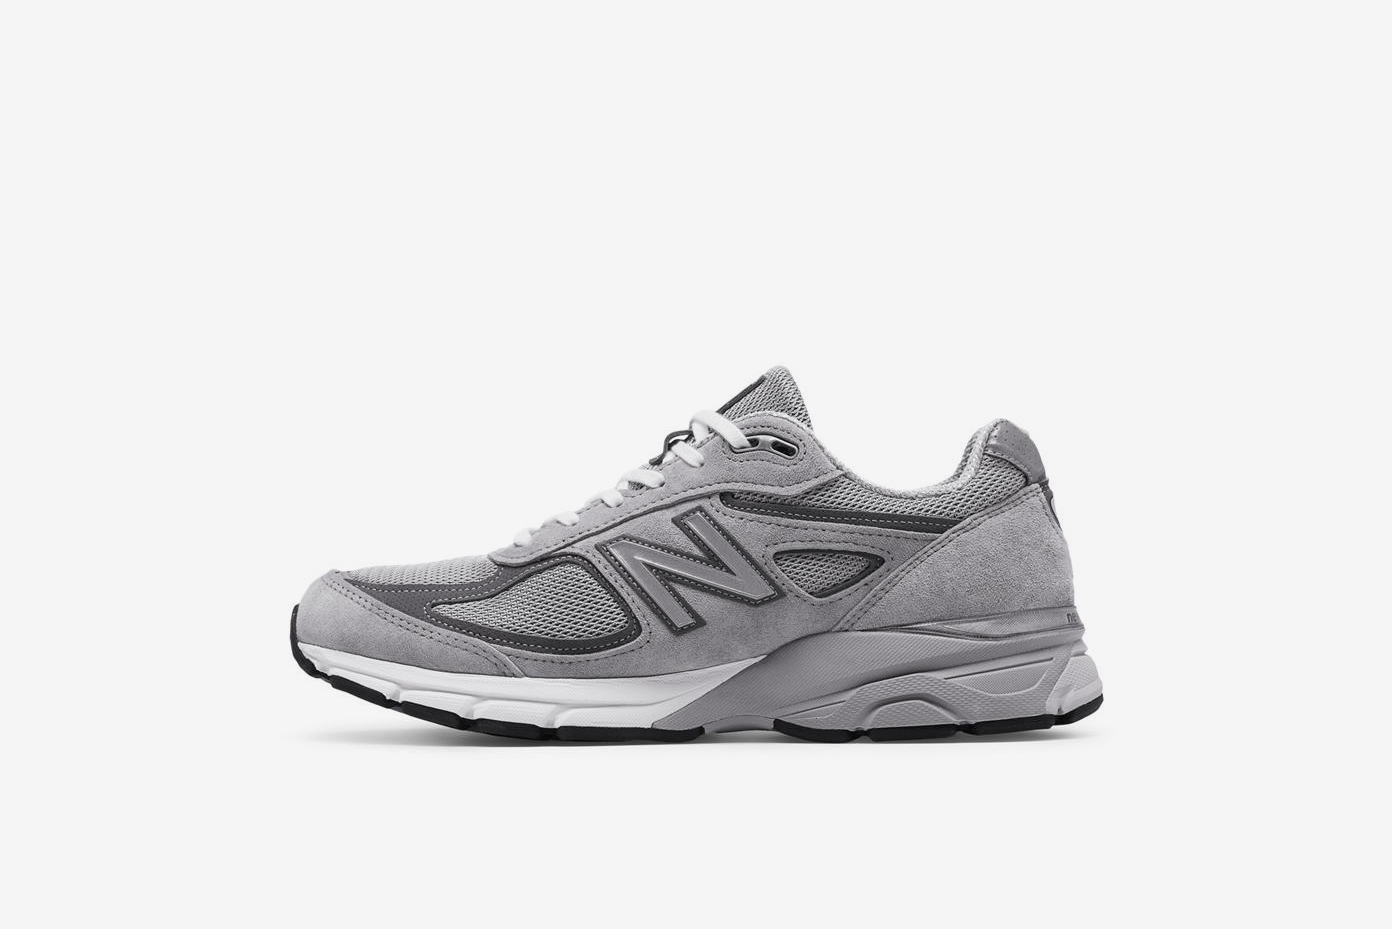 wholesale dealer 86c21 20ea2 The Stüssy x New Balance 990V4 Drops in a Cream Colorway